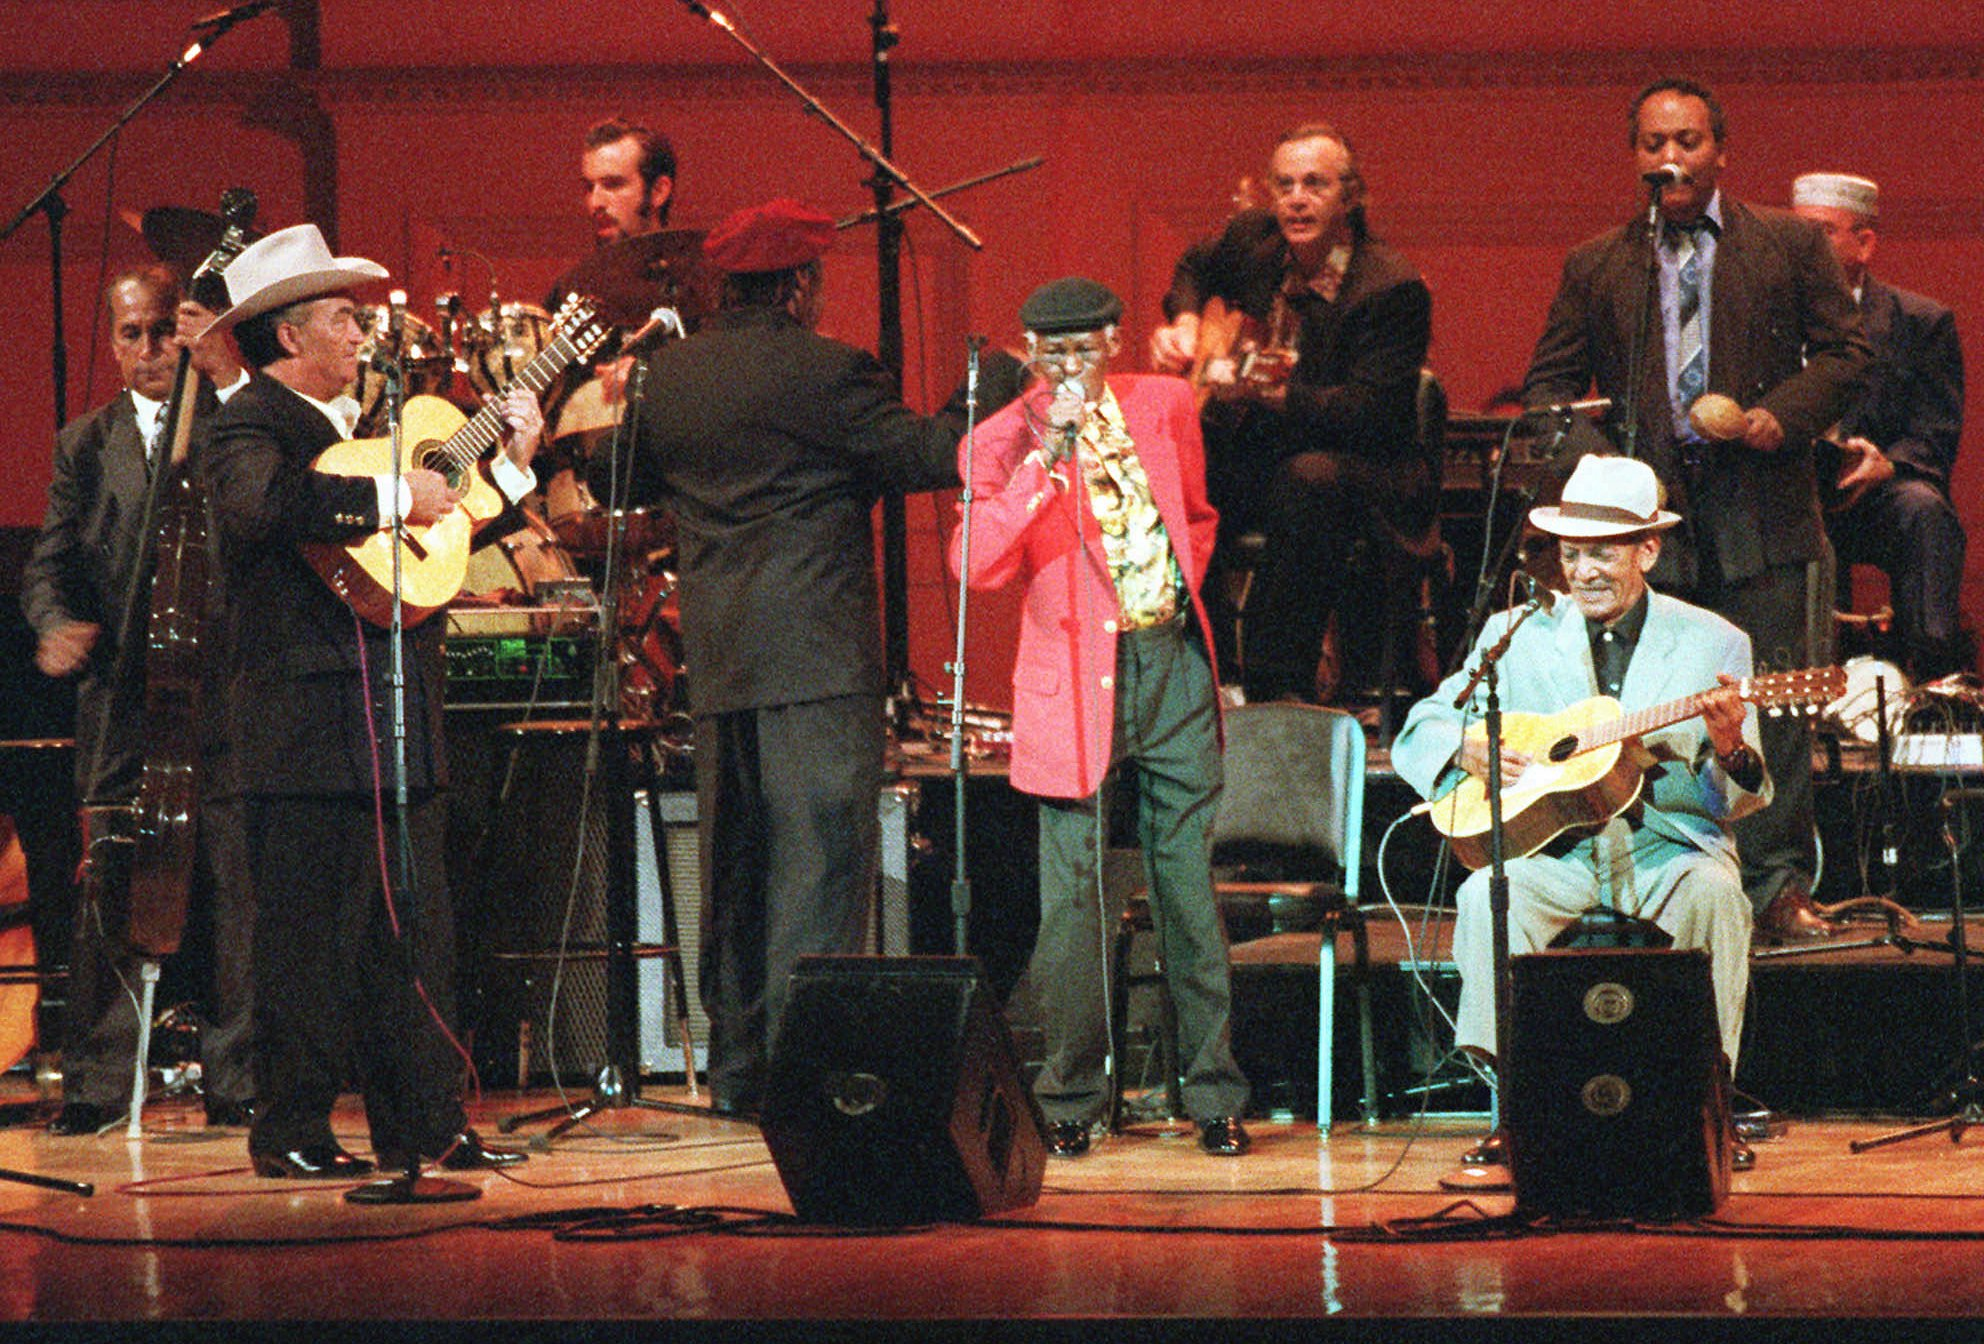 The Buena Vista Social Club performs at New York's Carnegie Hall in 1998.